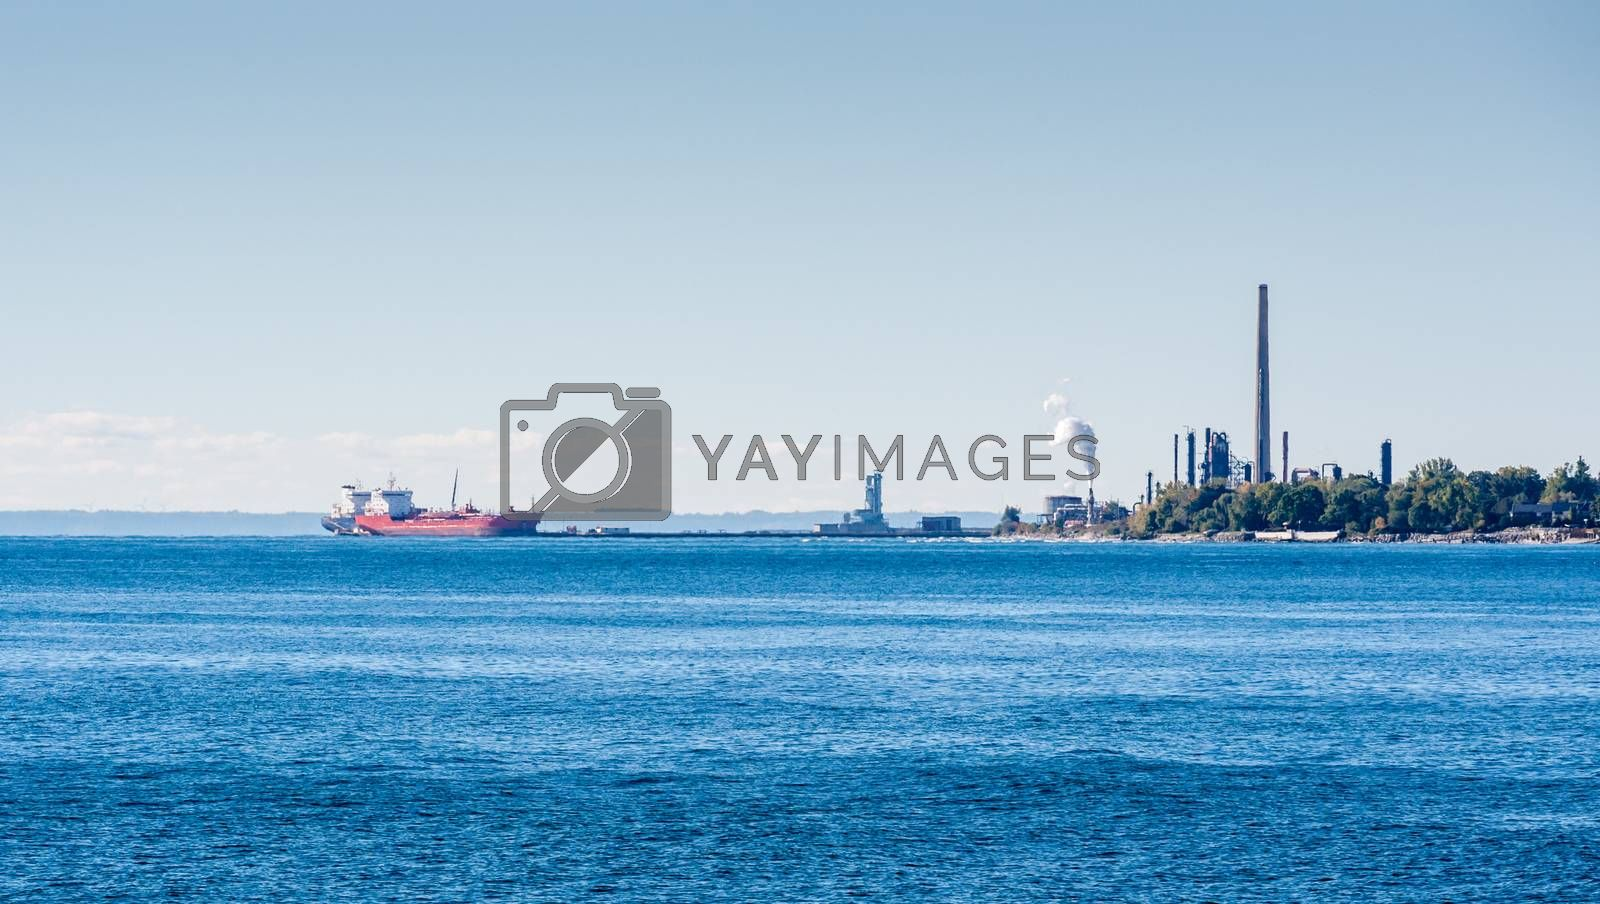 MISSISSAUGA, CANADA - OCTOBER 10, 2016: Tanker ships are docked at the Suncor Energy lubricants plant on the northern shore of Lake Ontario.